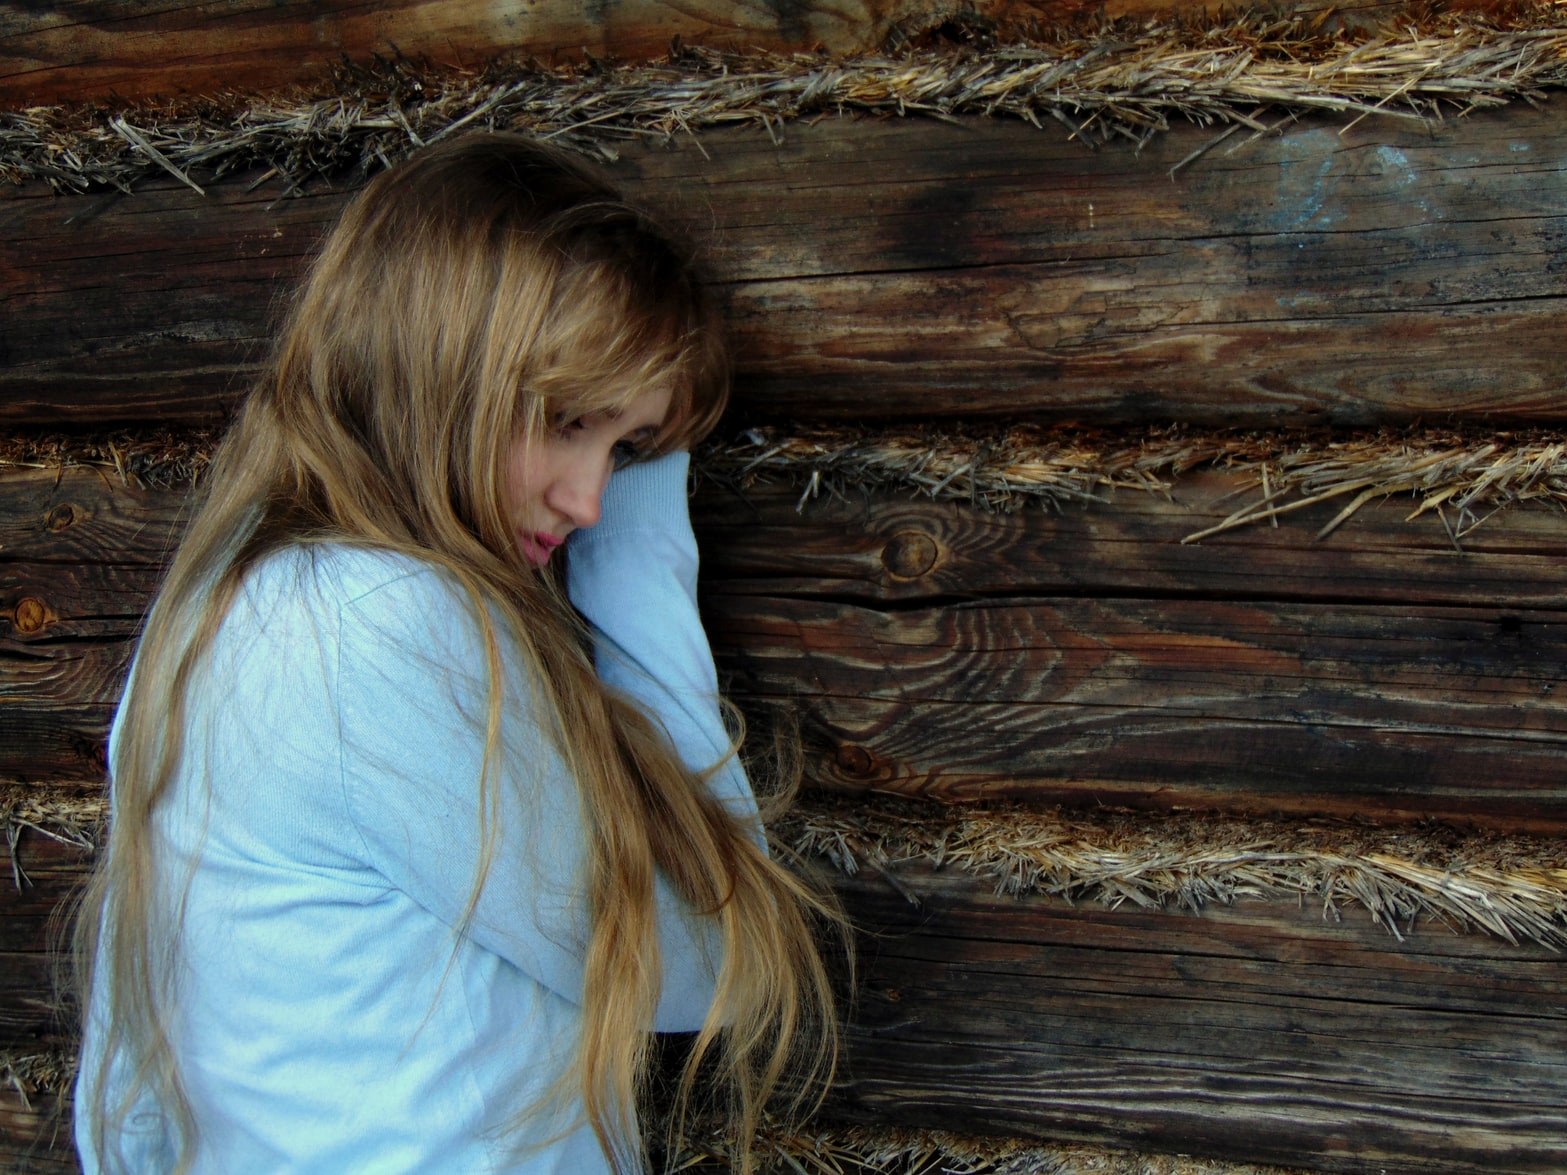 Depressed blonde woman leaning against brown wooden wall